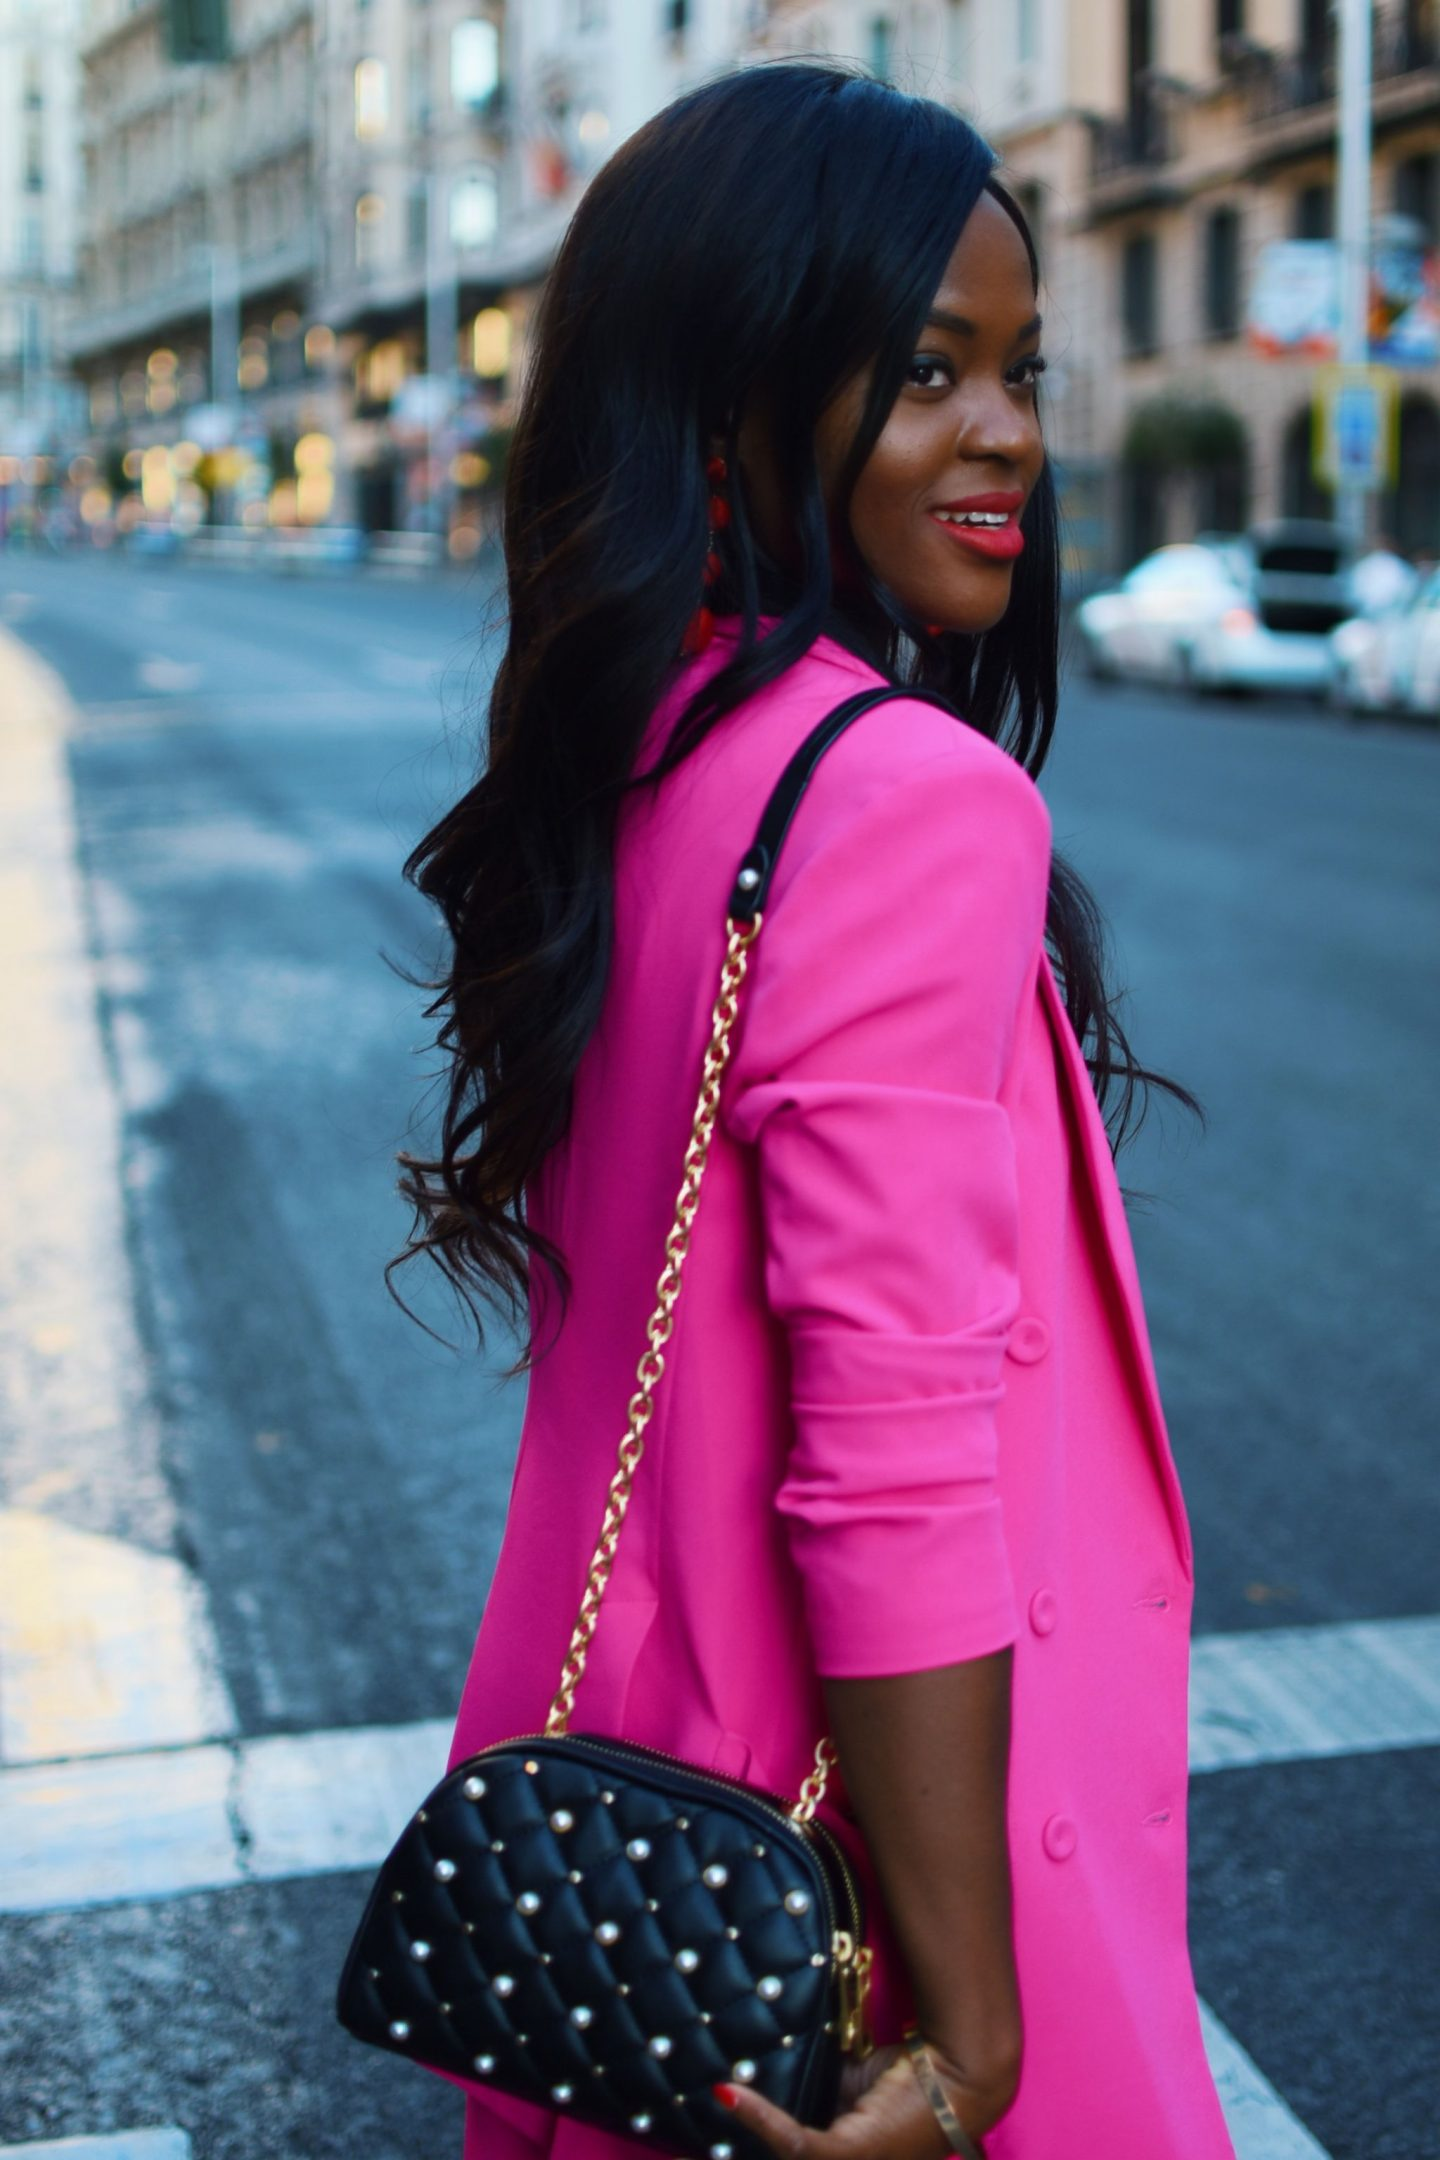 pink suit in Madrid